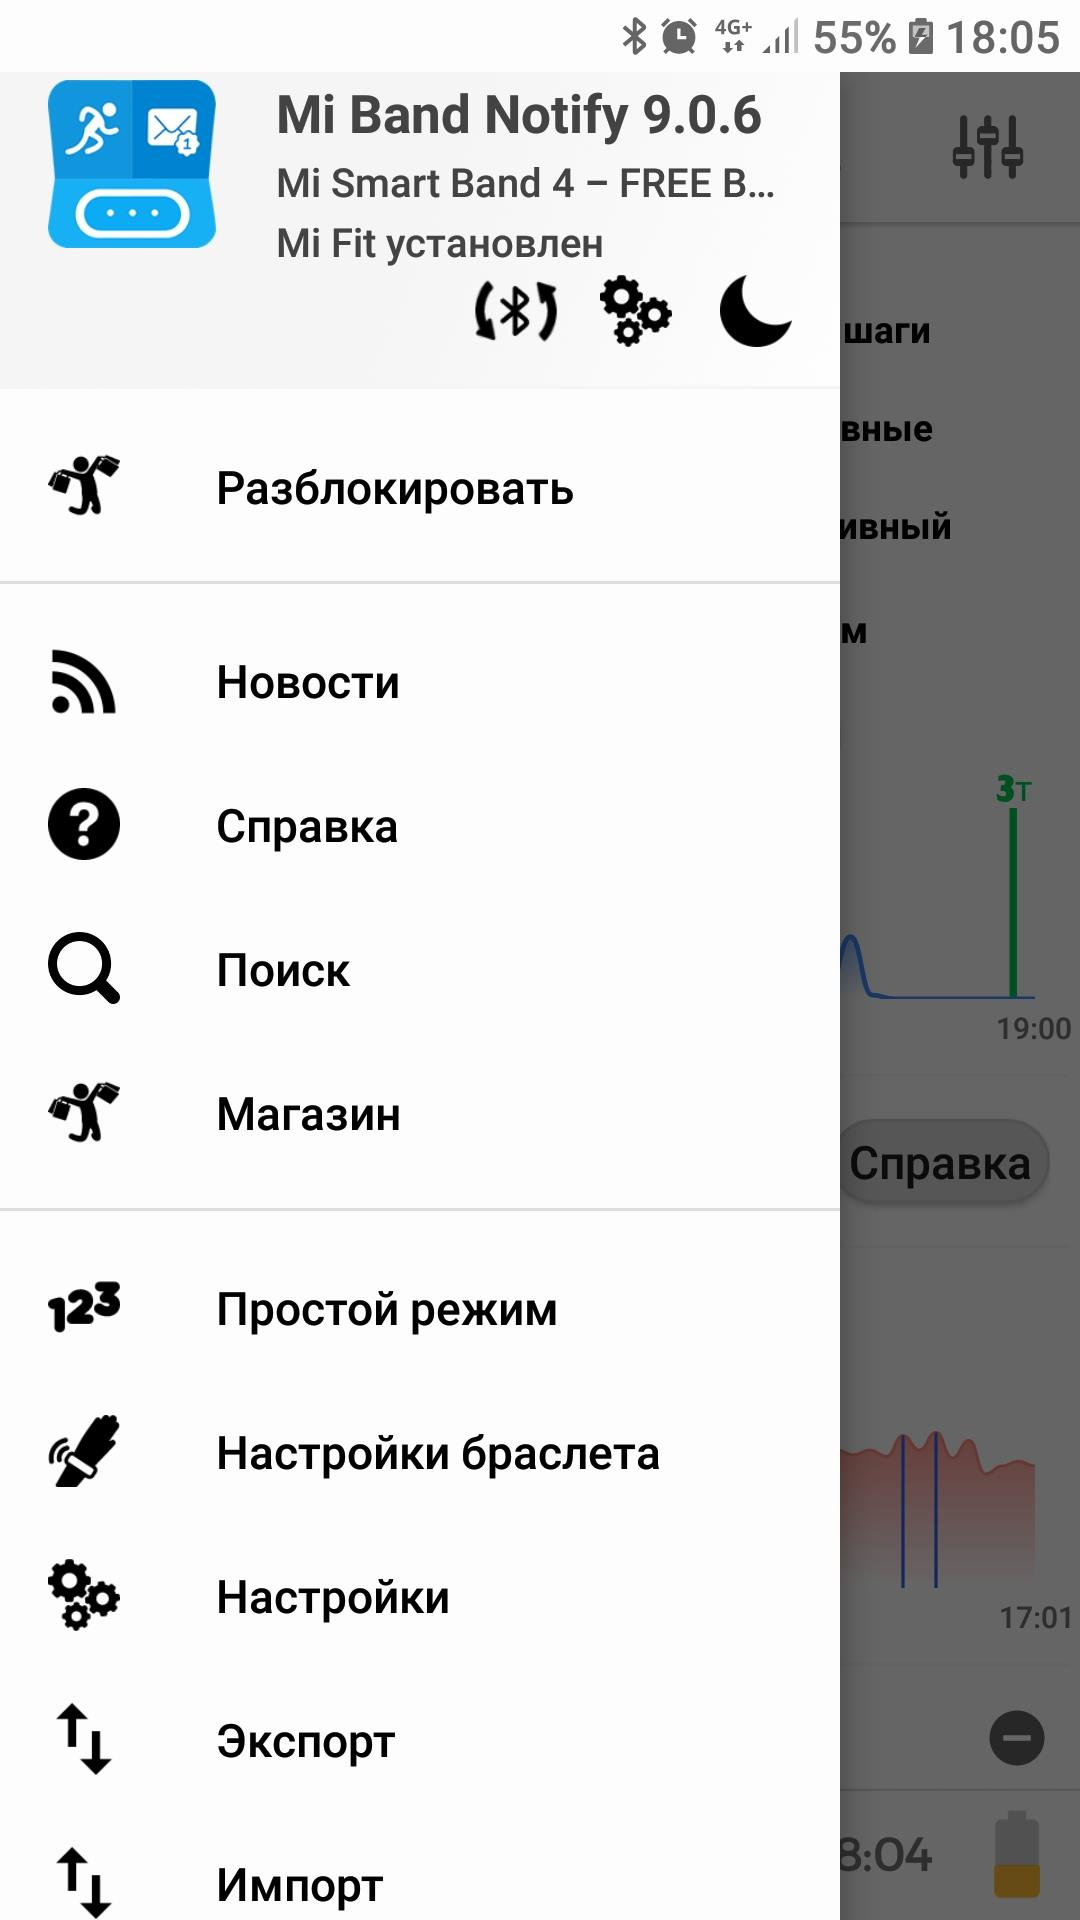 Внешний вид Notify & Fitness for Mi Band 2